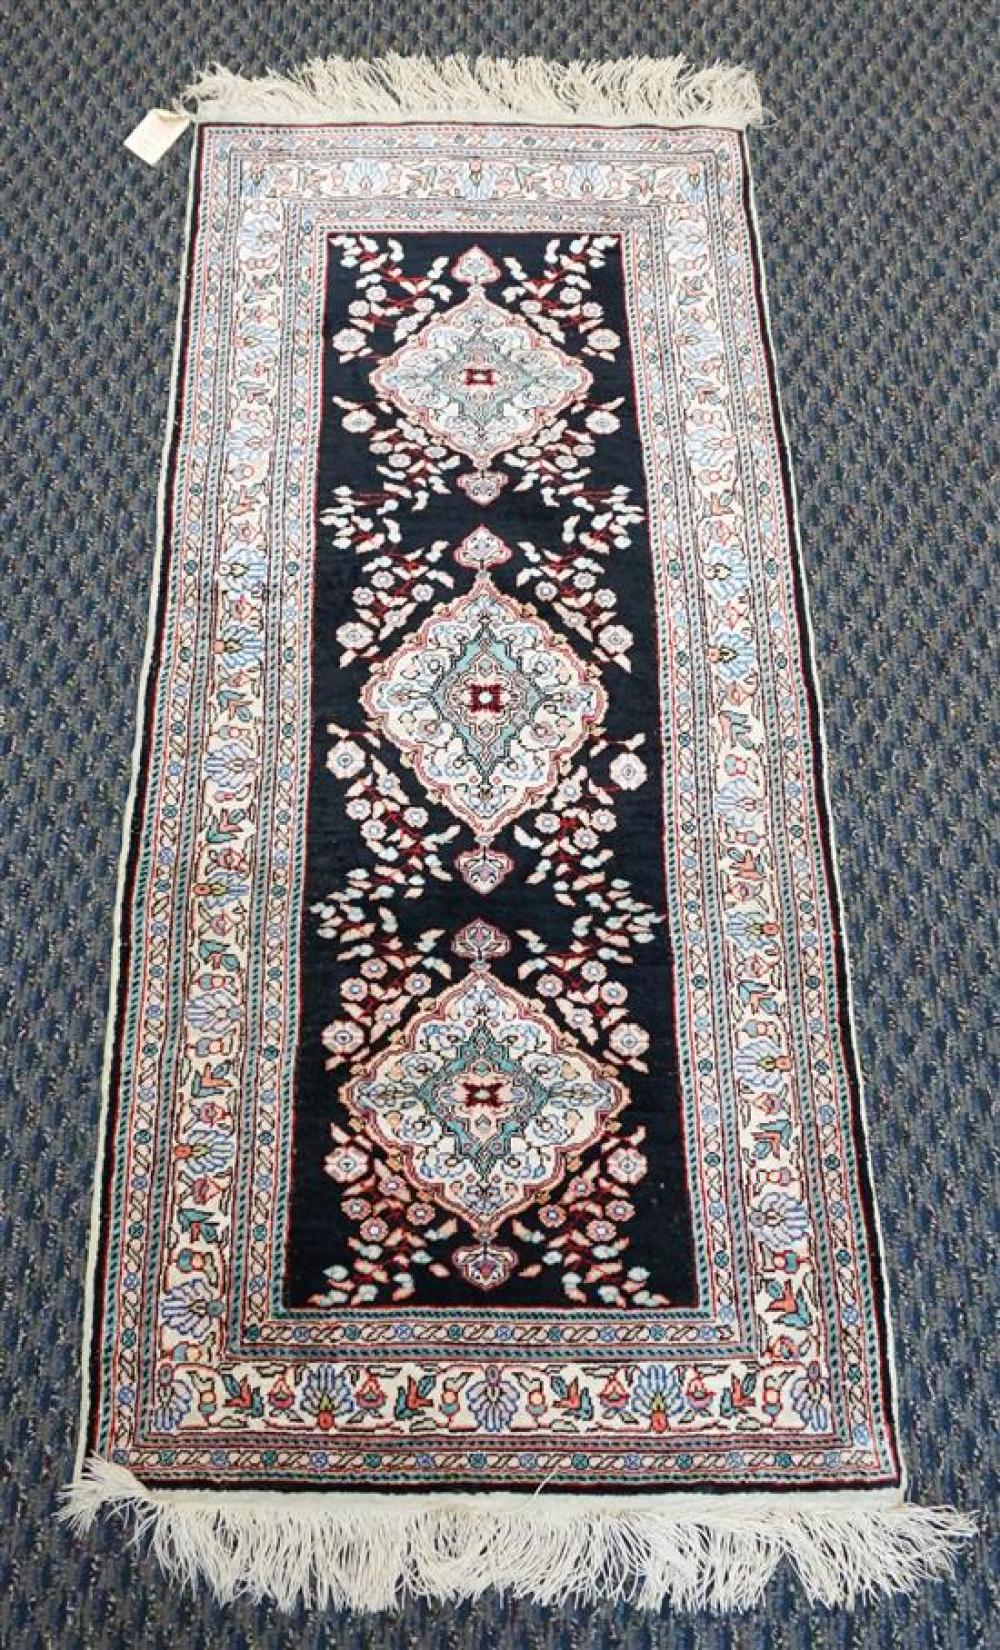 Chinese Partial Silk Rug, 4 ft 1 in x 1 ft 9 in